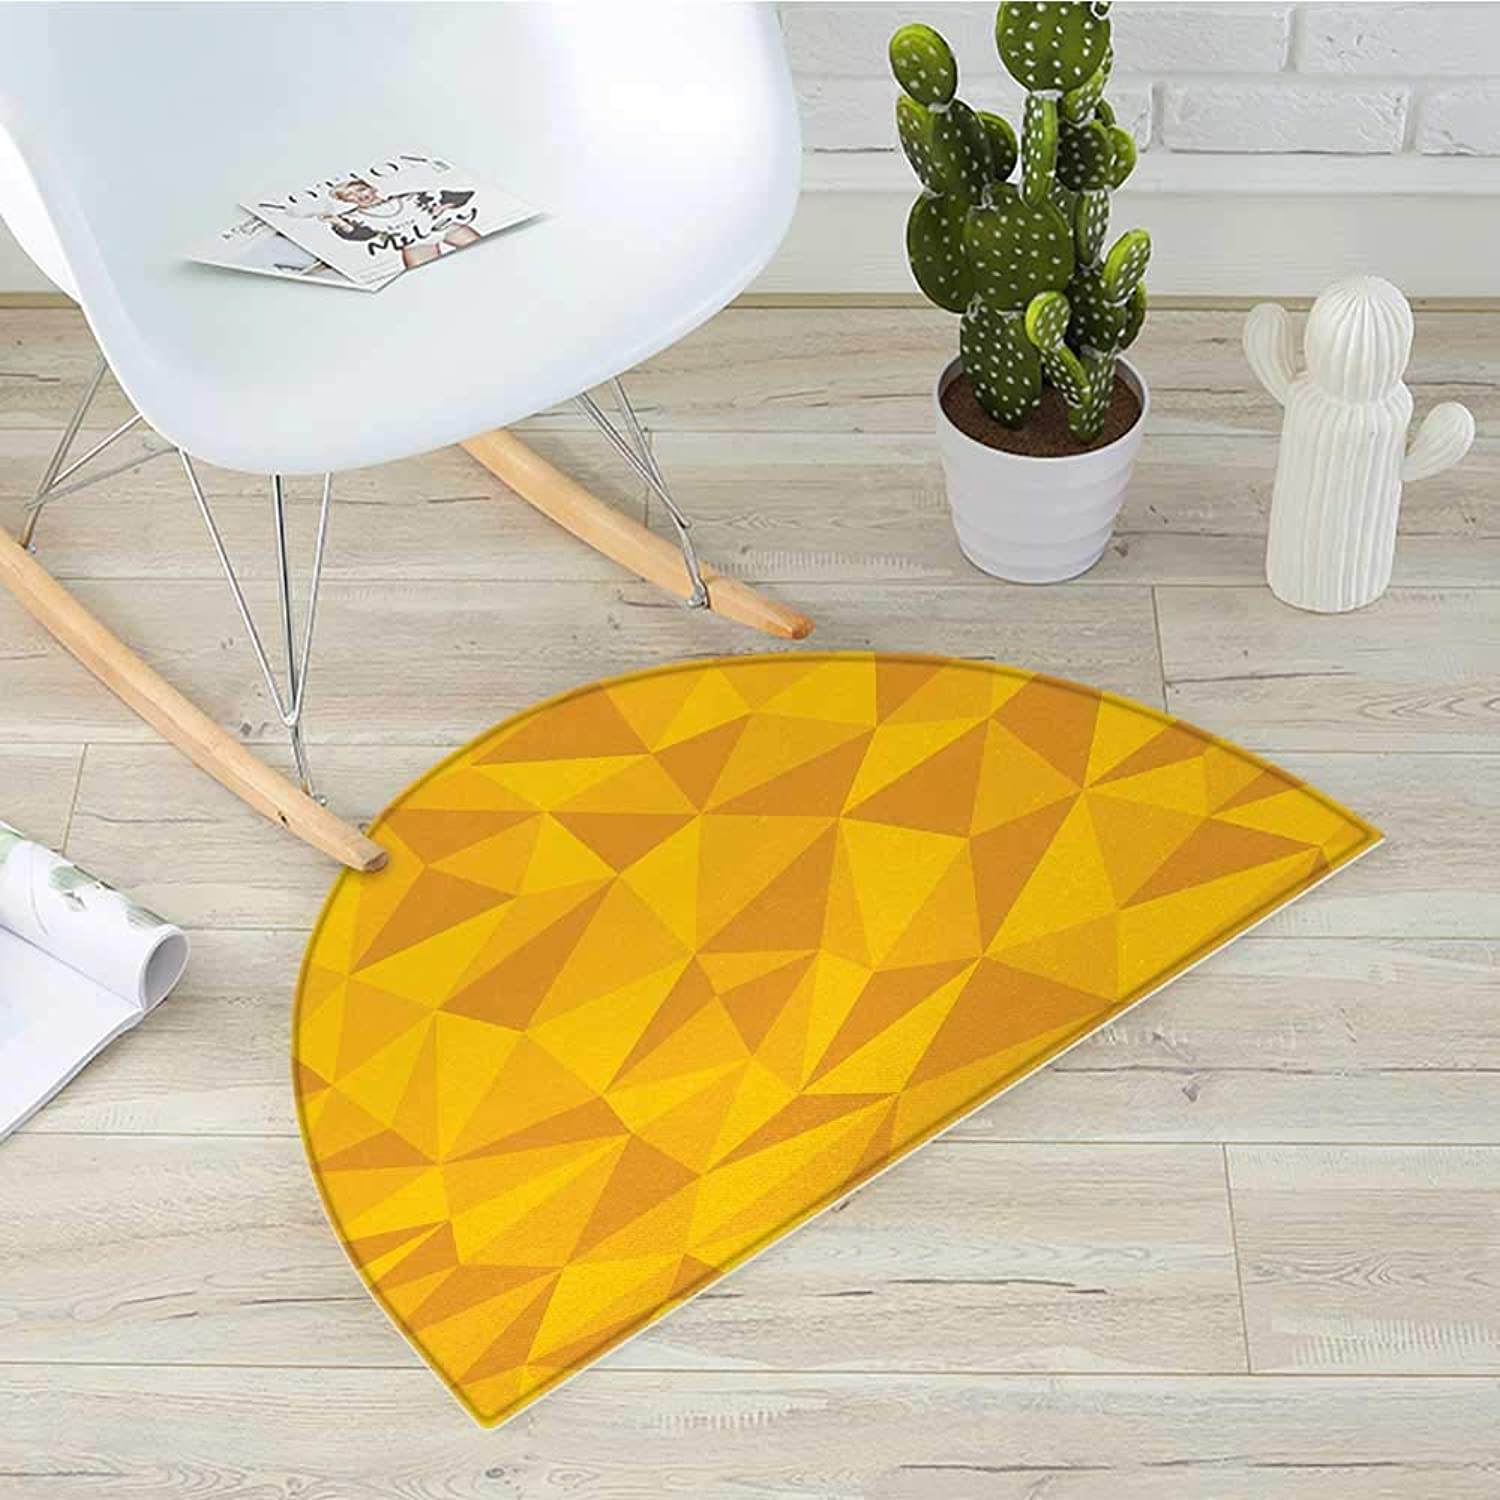 Yellow Half Round Door mats Abstract Triangular Cubic Unusual Shaded Shapes Patterns Stylized Mosaic Design Bathroom Mat H 35.4  xD 53.1  Yellow orange